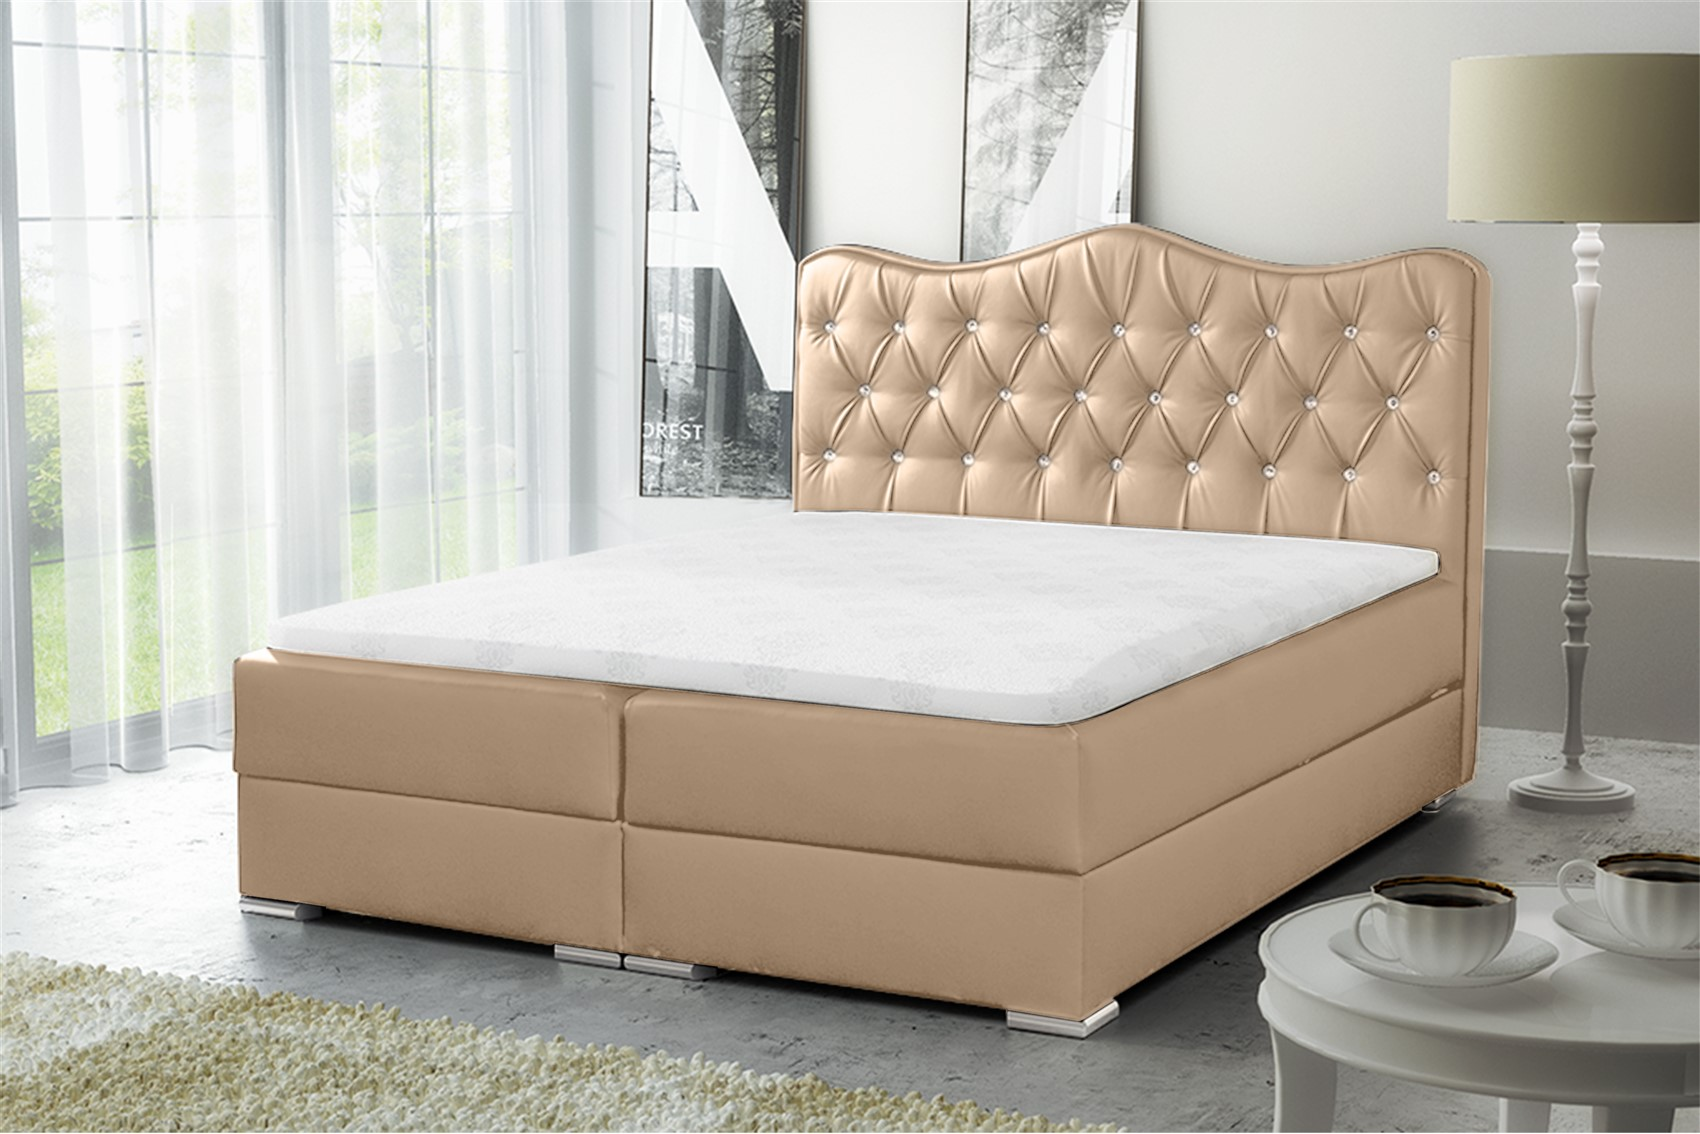 boxspringbett schlafzimmerbett sultan kunstleder creme. Black Bedroom Furniture Sets. Home Design Ideas